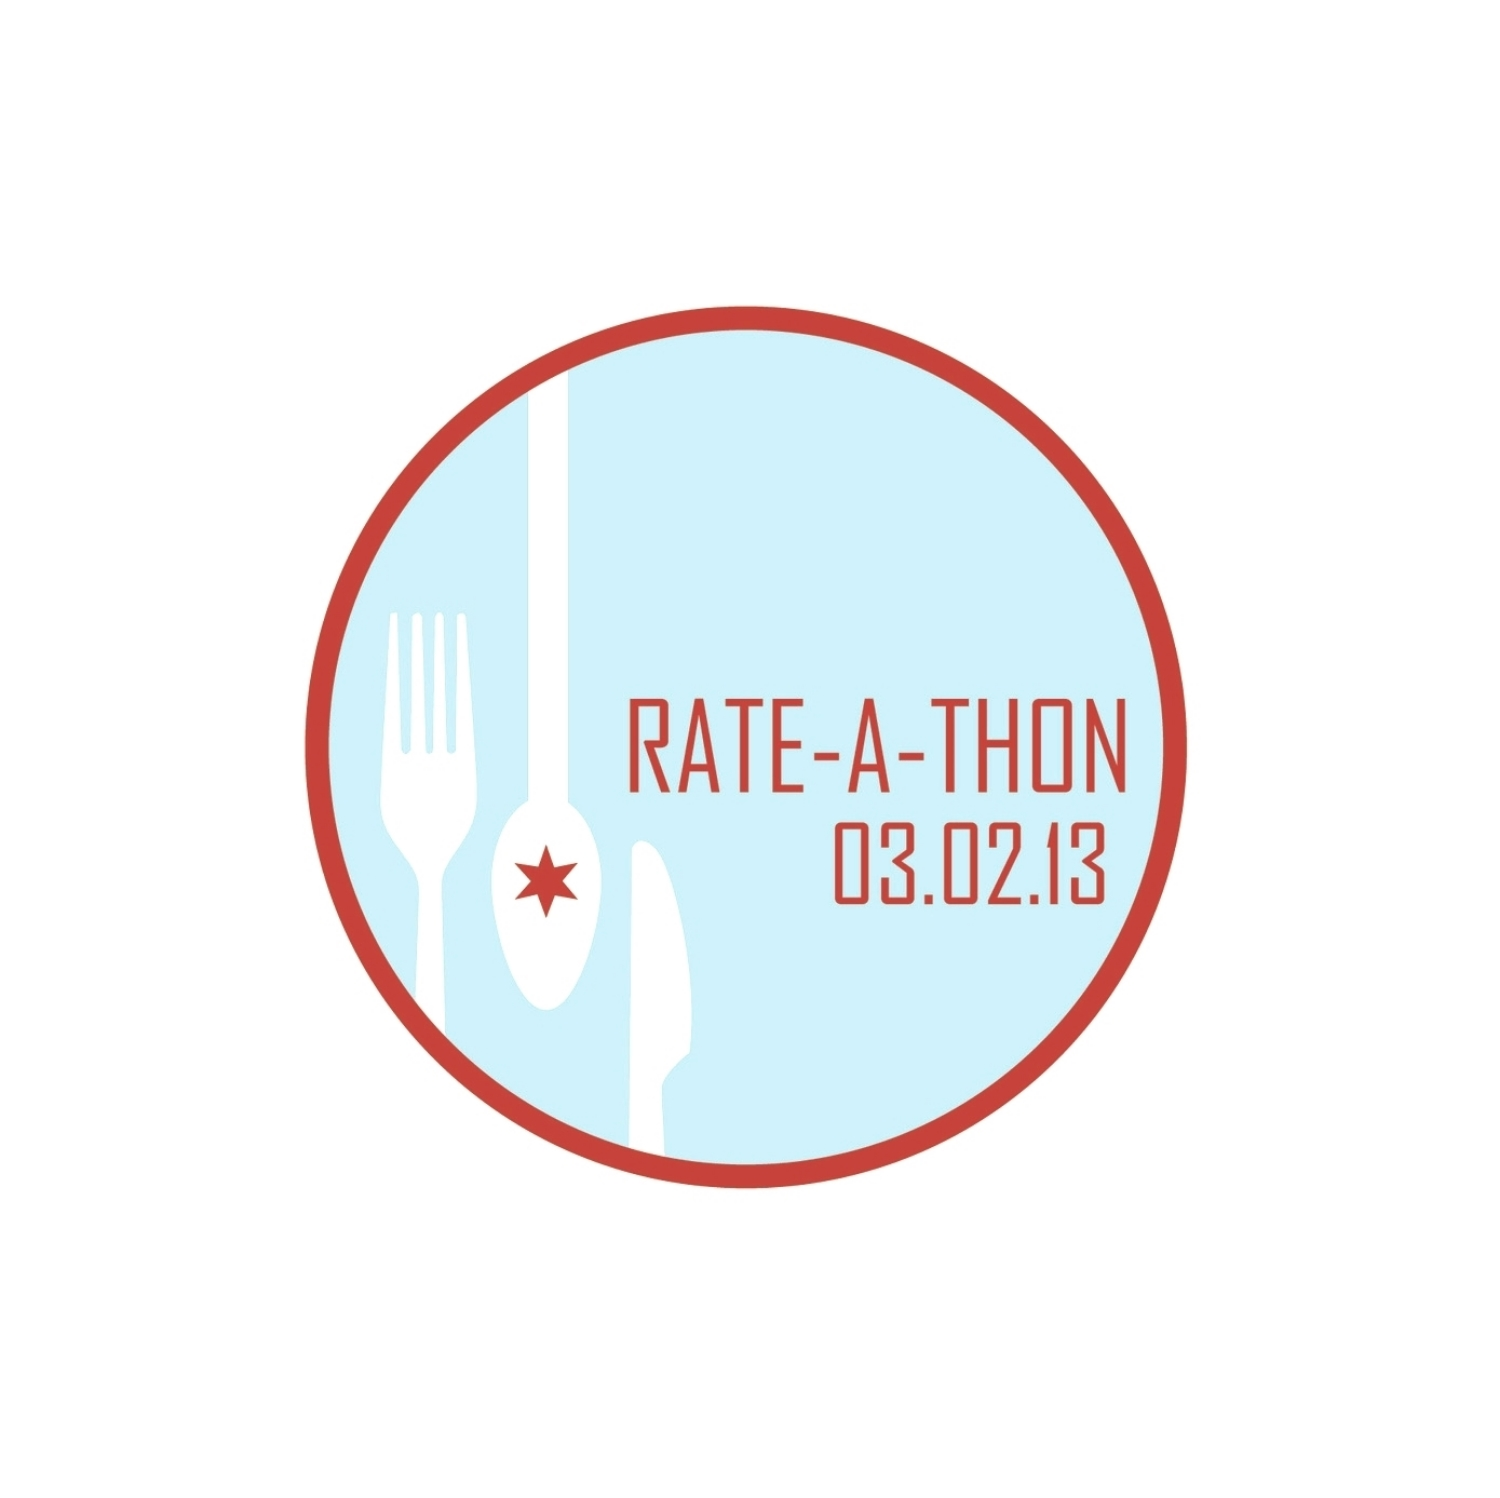 RATE-A-THON